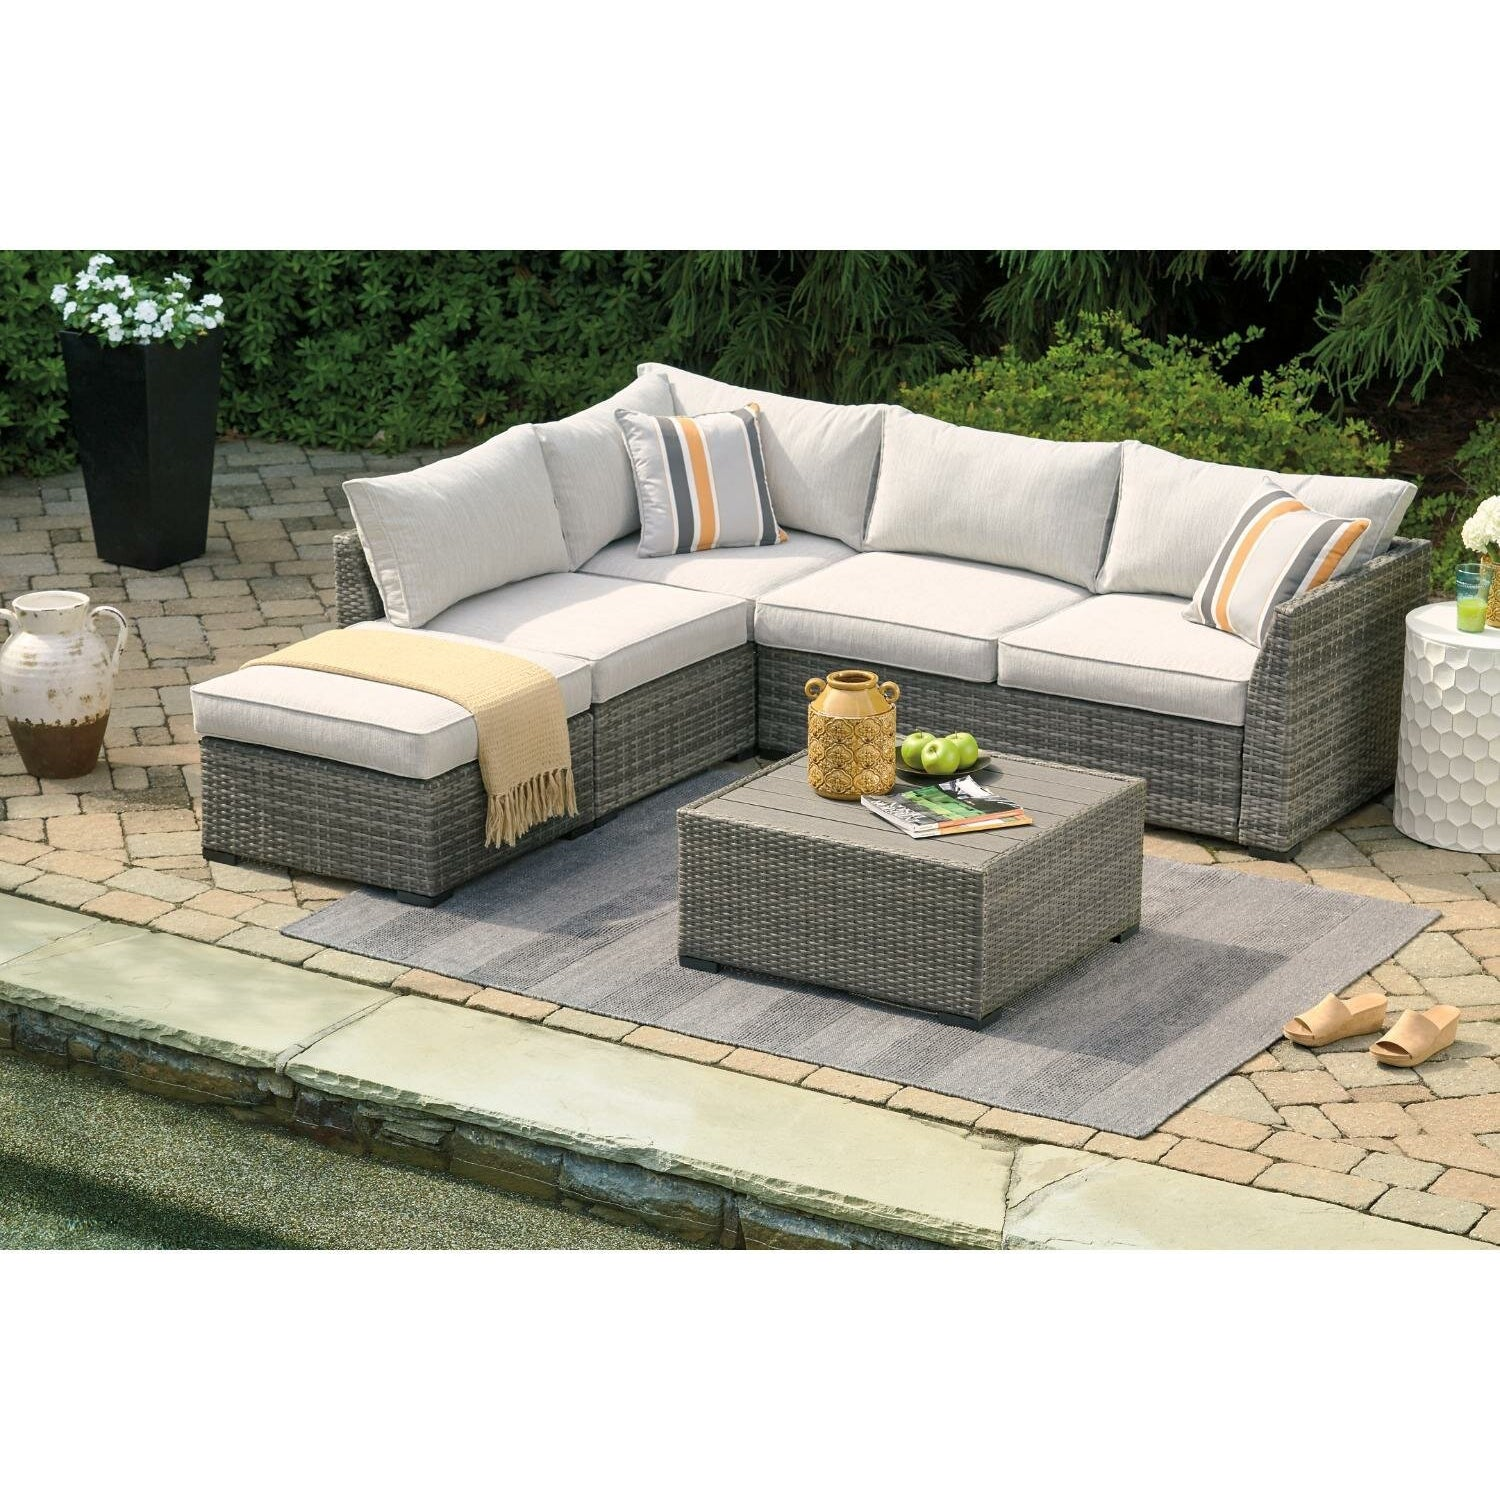 Shelter Island 4-Piece Outdoor Sectional